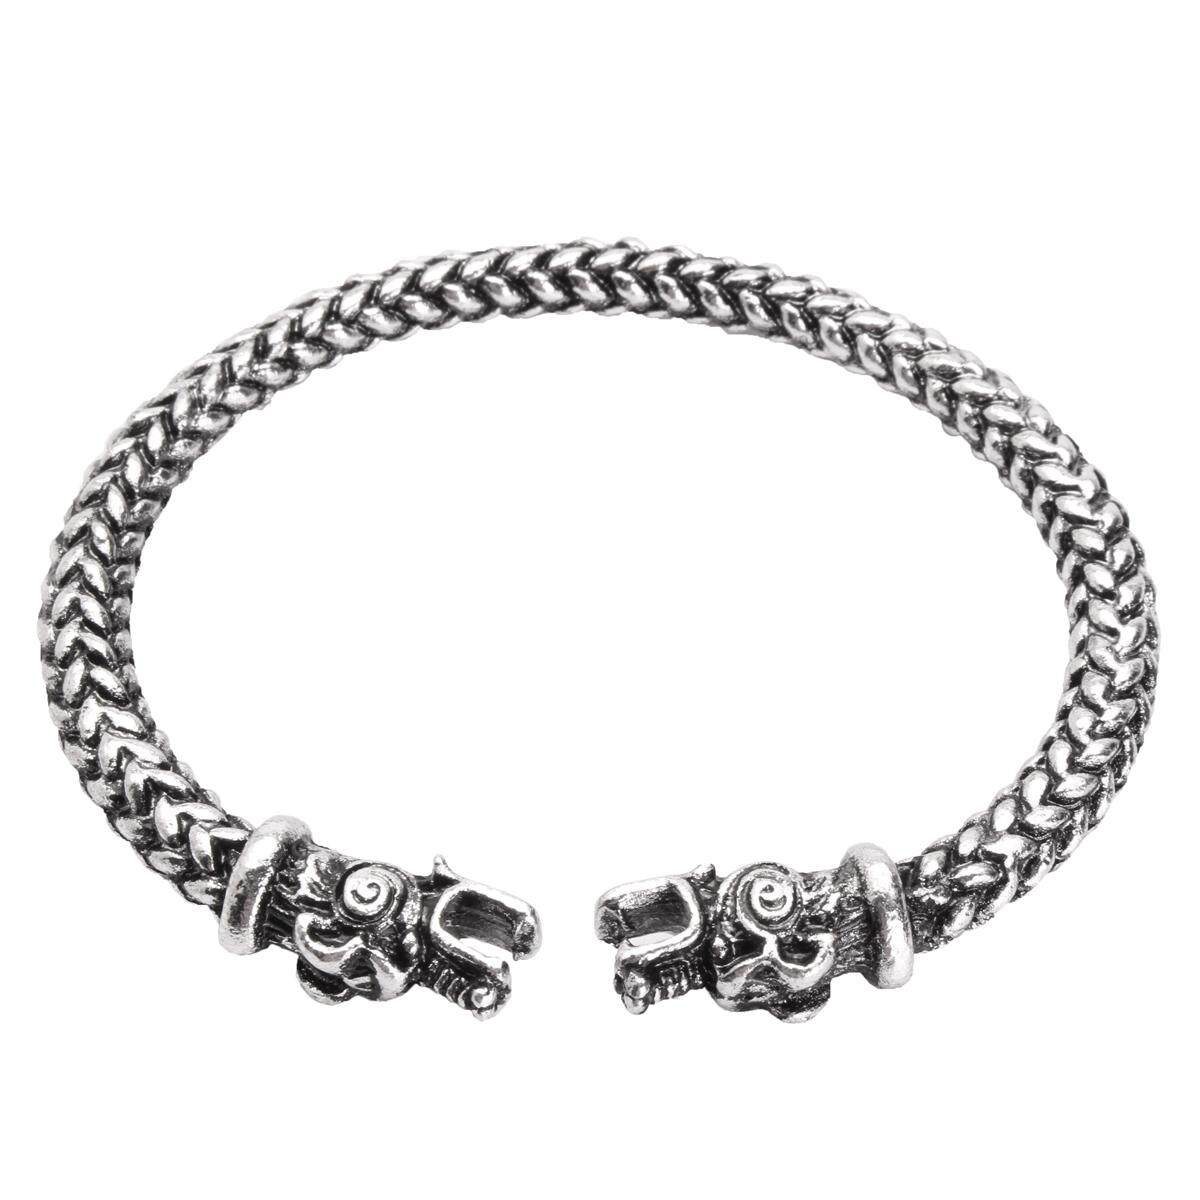 Viking Dragon Head Bracelet Norse Mythology Jormungandr Beast Bangle Men Jewelry By Freebang.